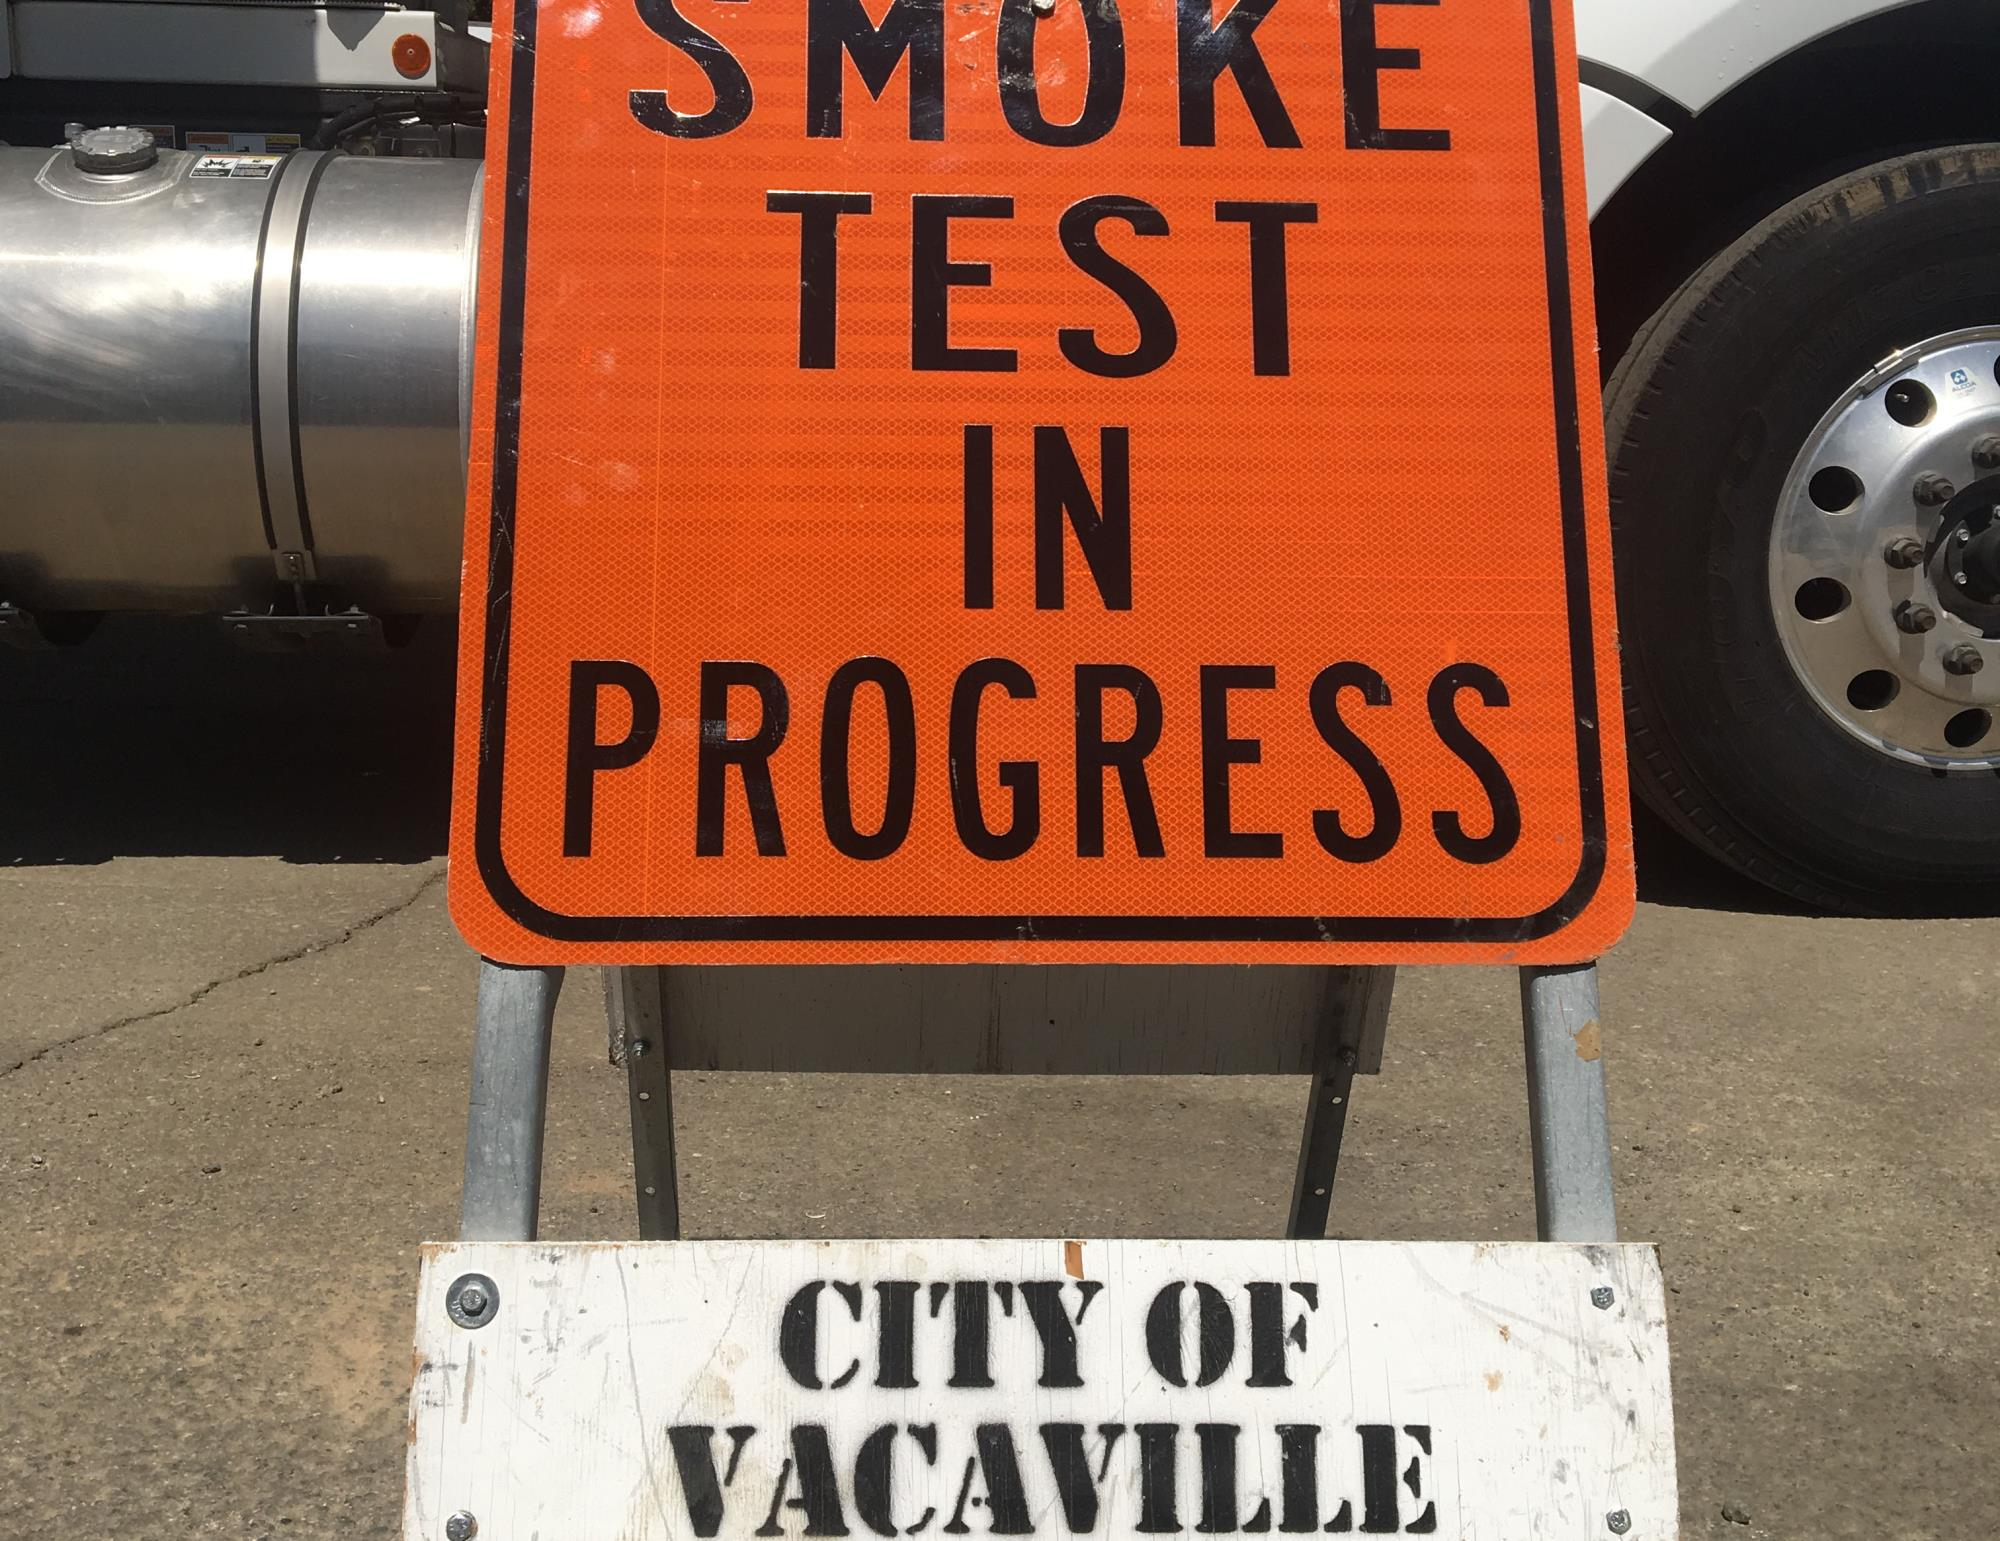 picture of smoke testing in progress sign